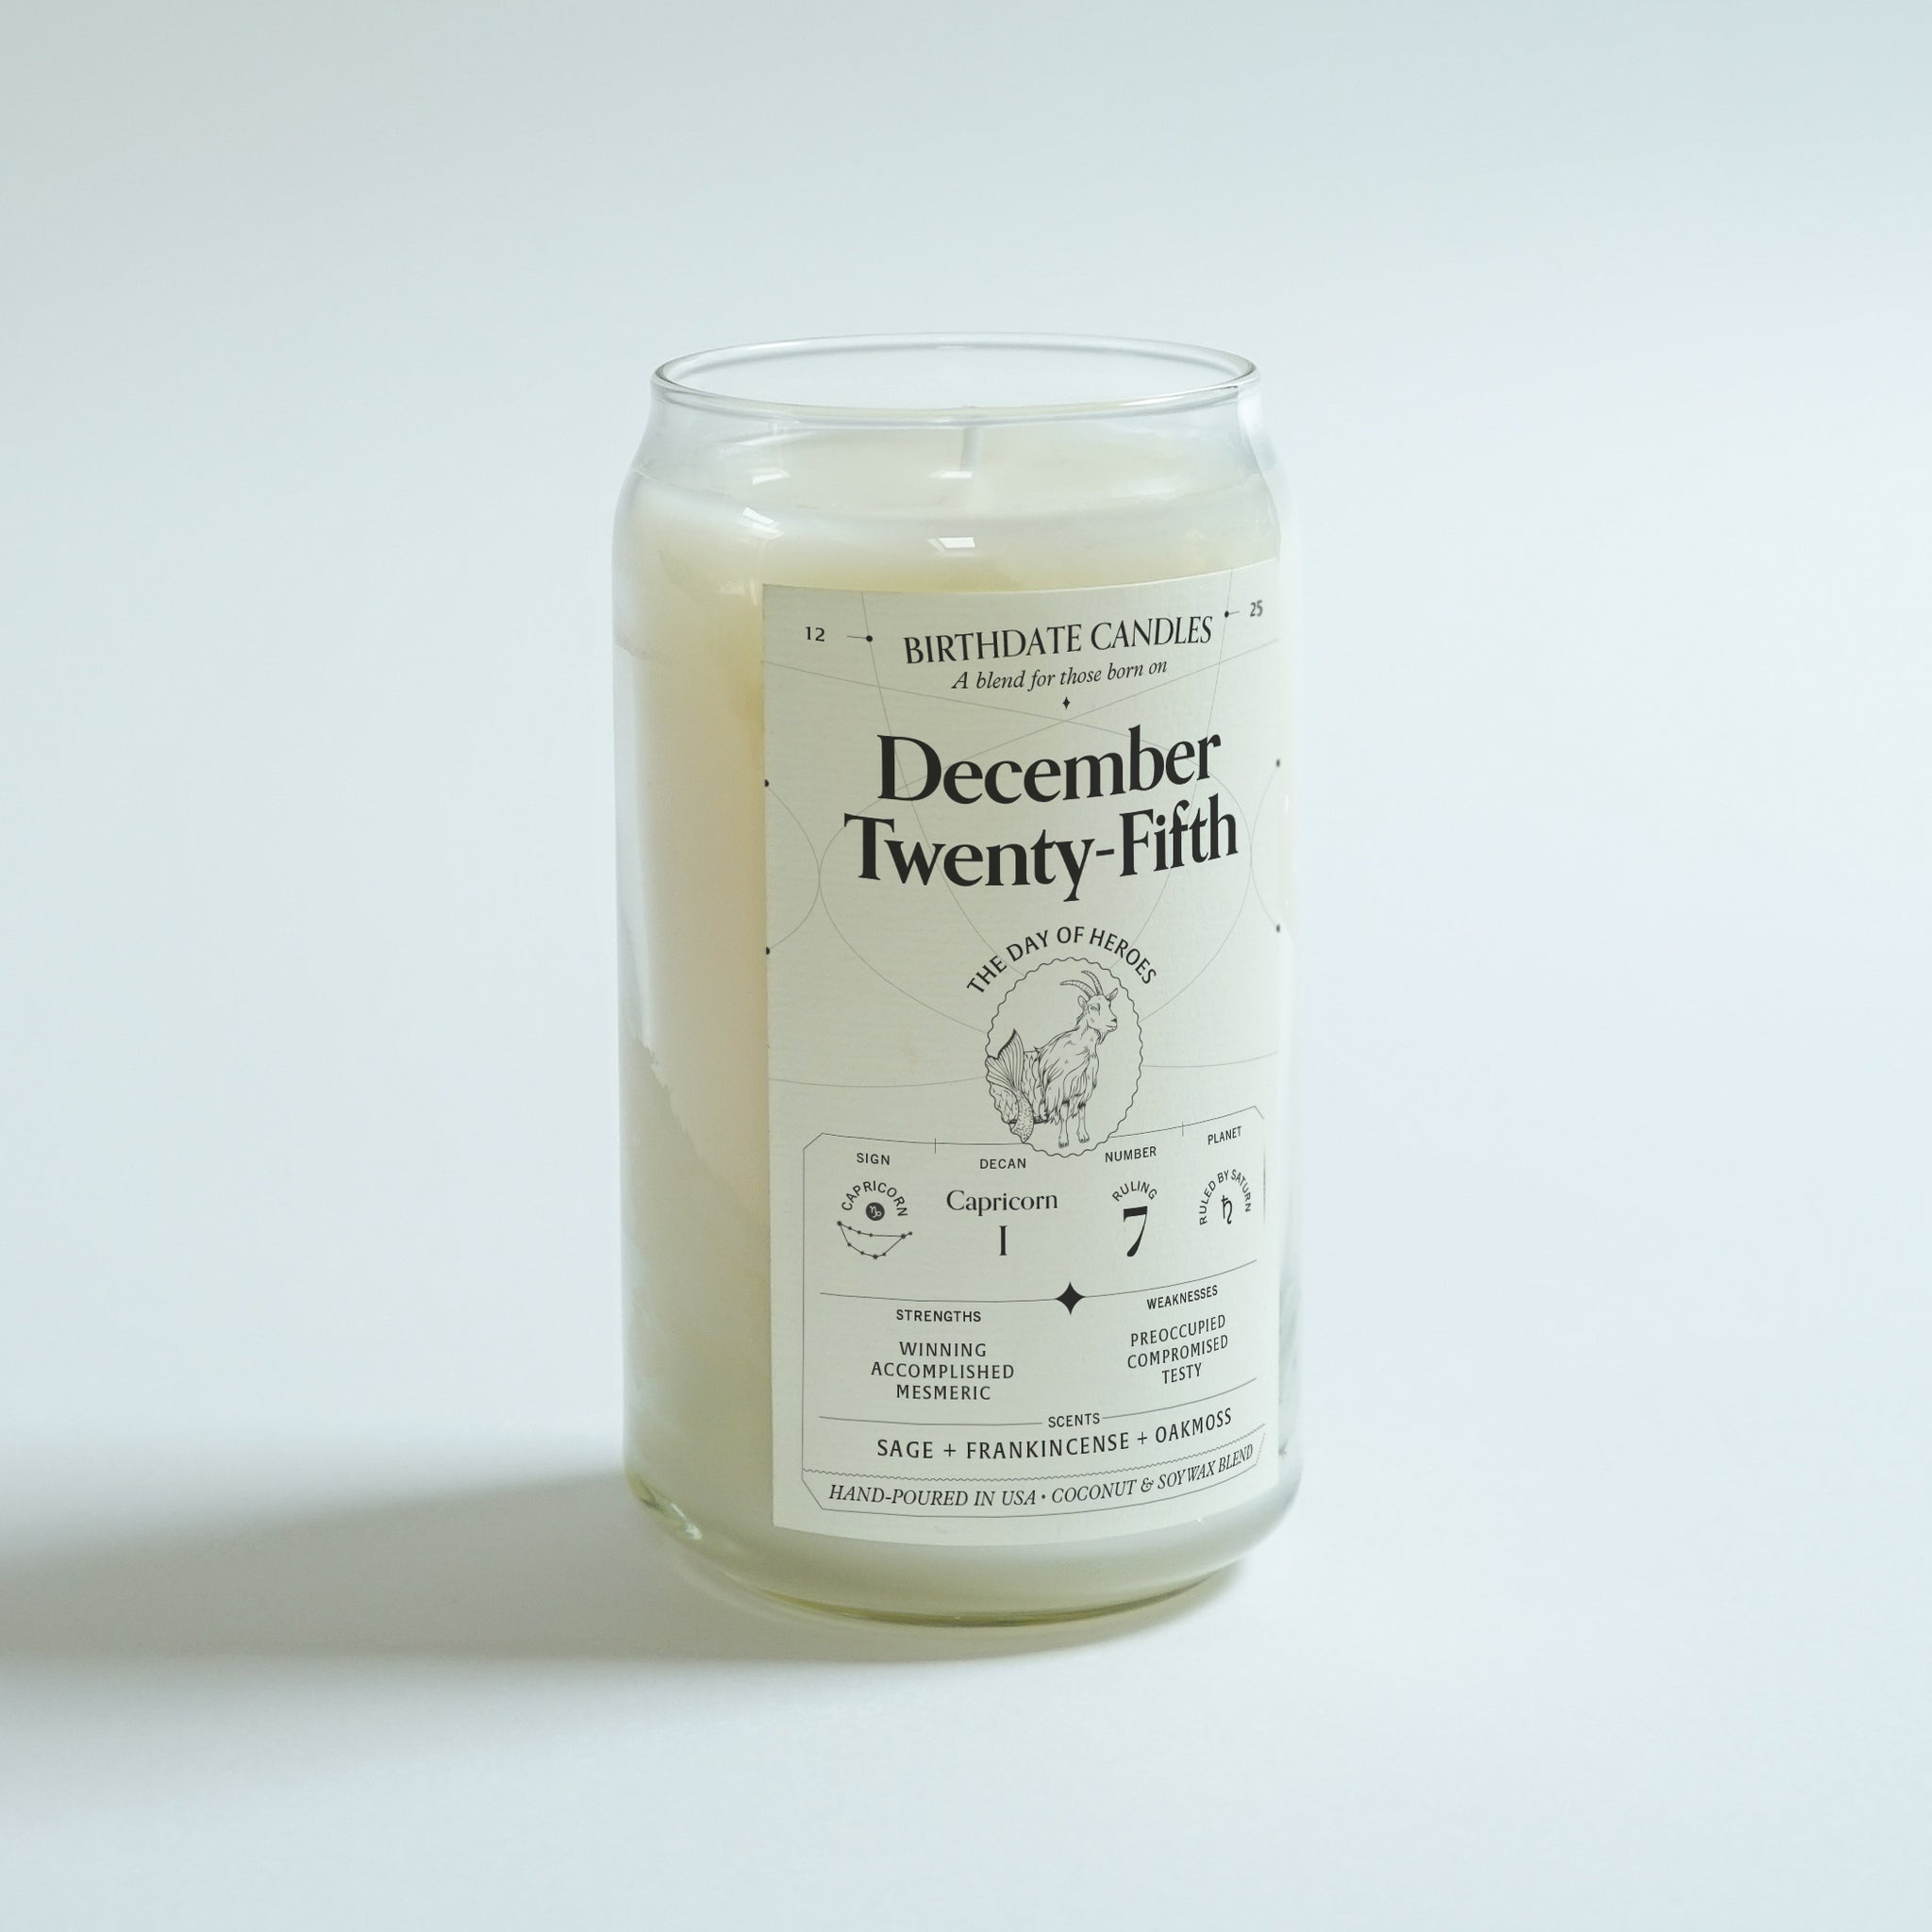 The December Twenty-Fifth Candle